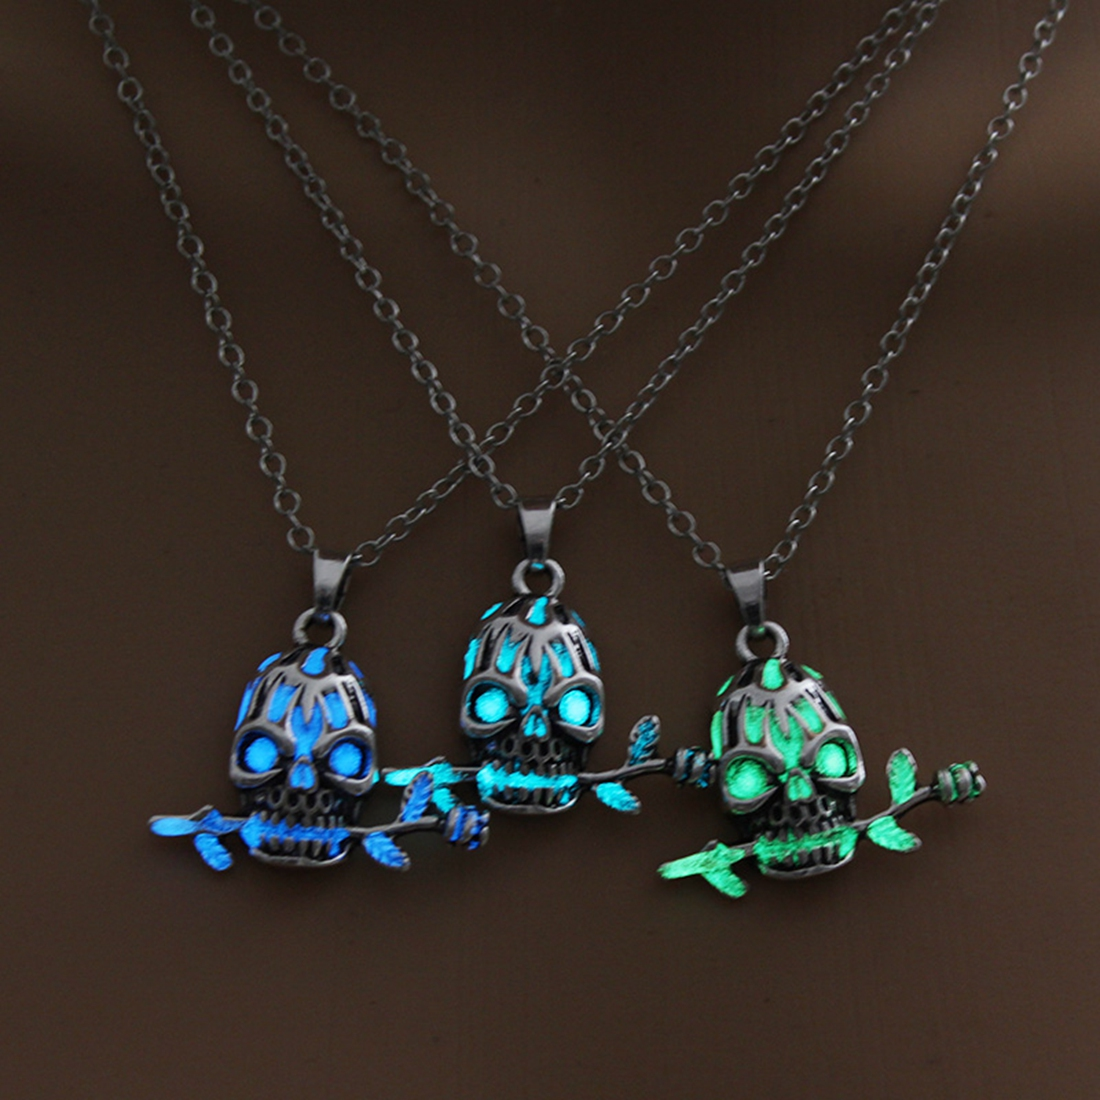 NEW Arrival Skull Bite Rose Flower Pendant Necklace Glow In The Dark Unique Necklace Fashion Jewelry Sweater Chain Luminous